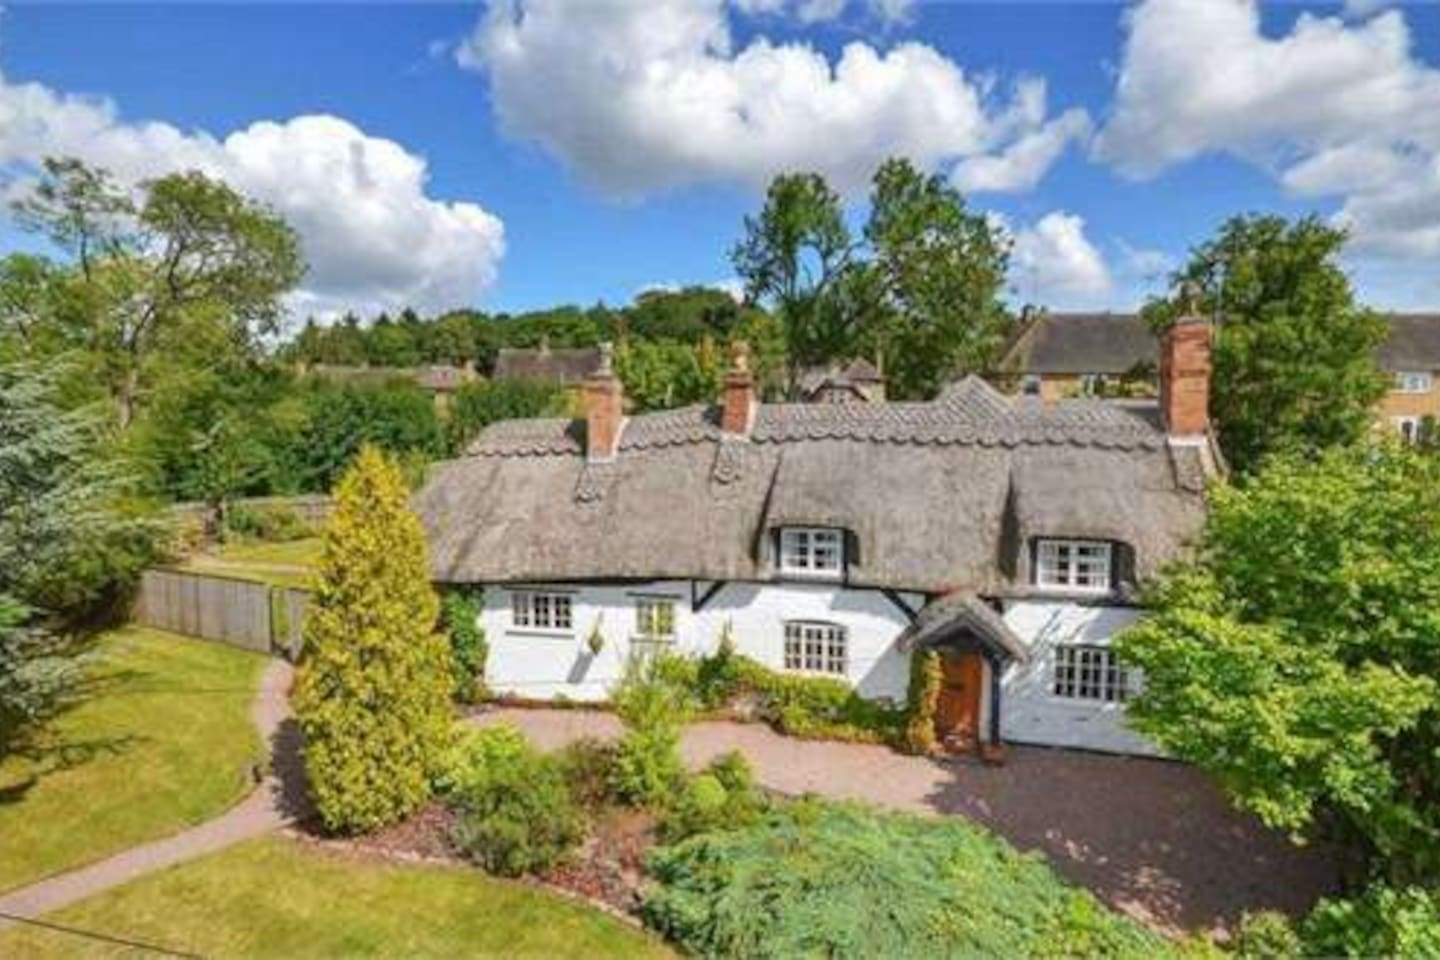 Tumbledown Cottage nestled in picture perfect village